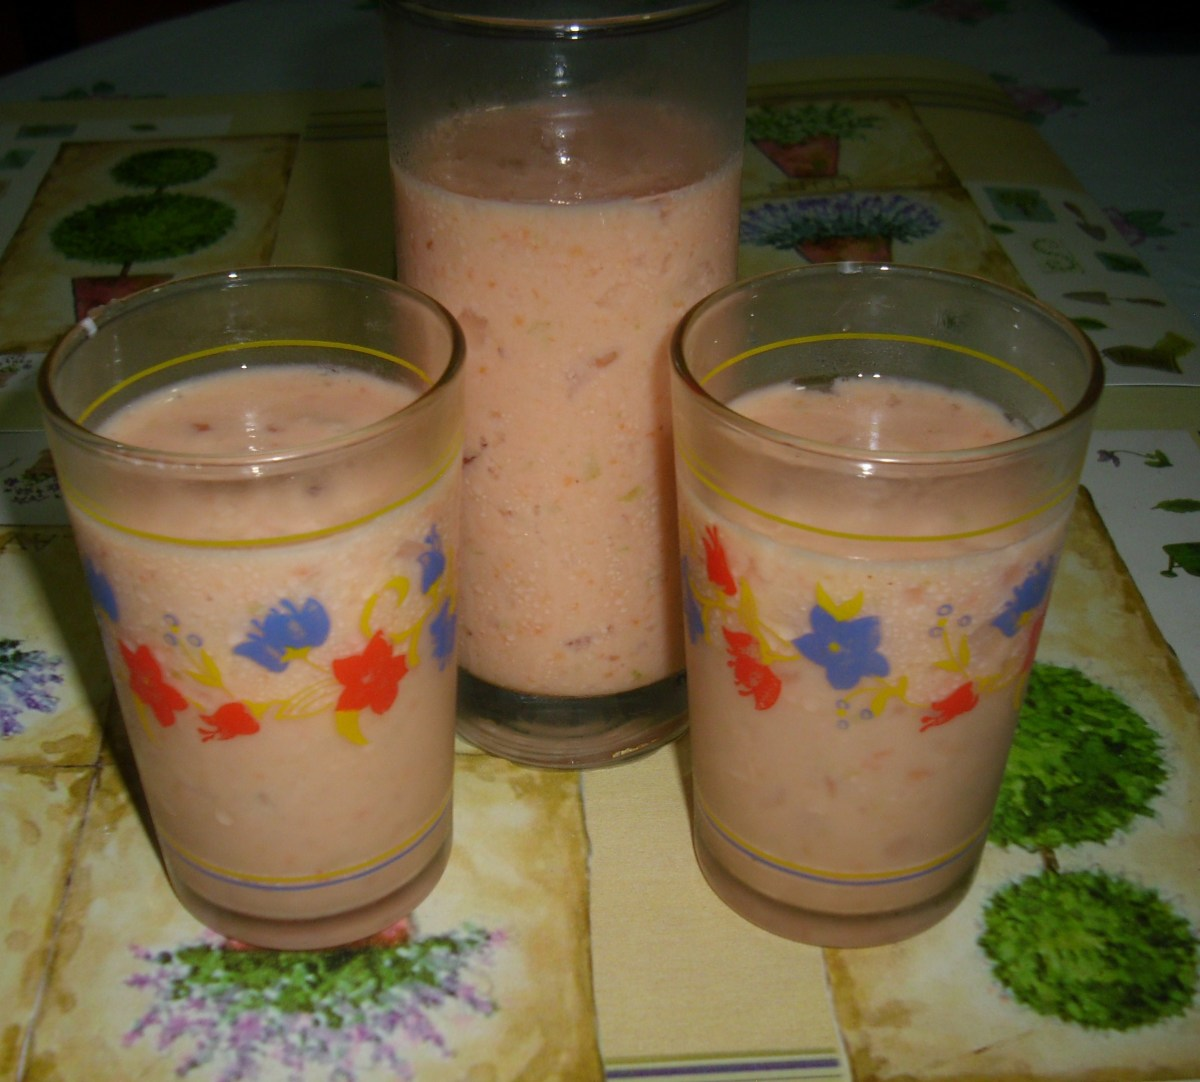 Star Fruit / Carambola and Papaya Smoothies